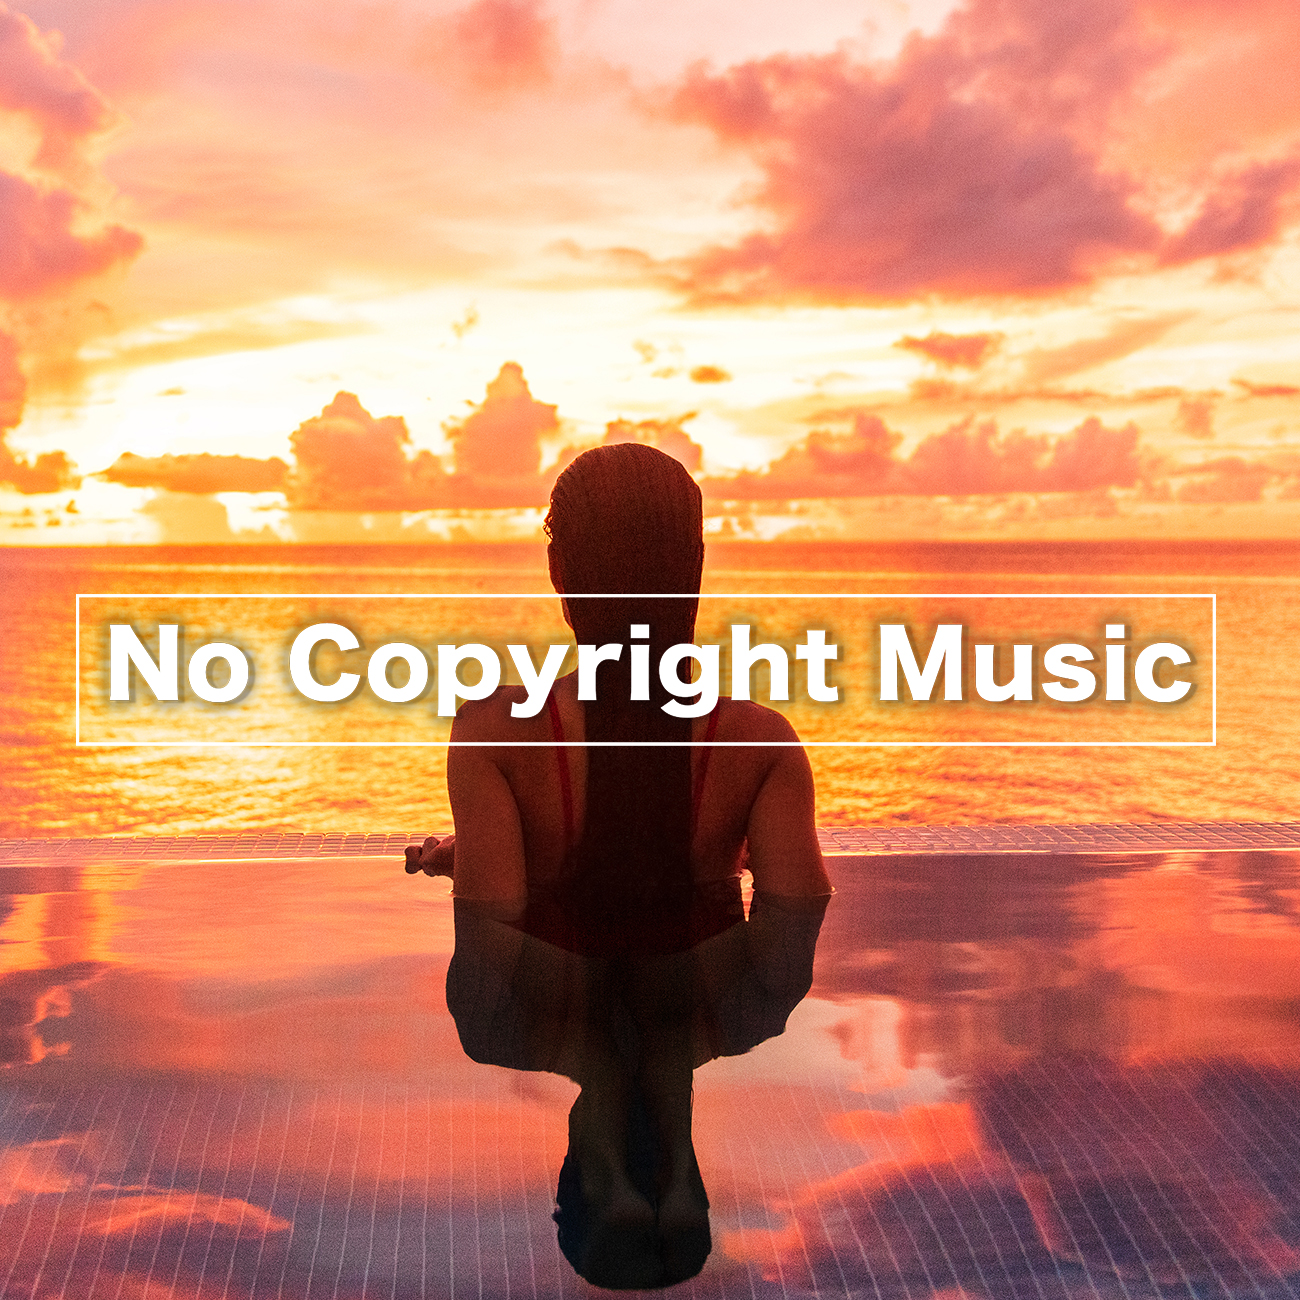 No Copyright Music   Vlog by ZERO   Free Download on Hypeddit